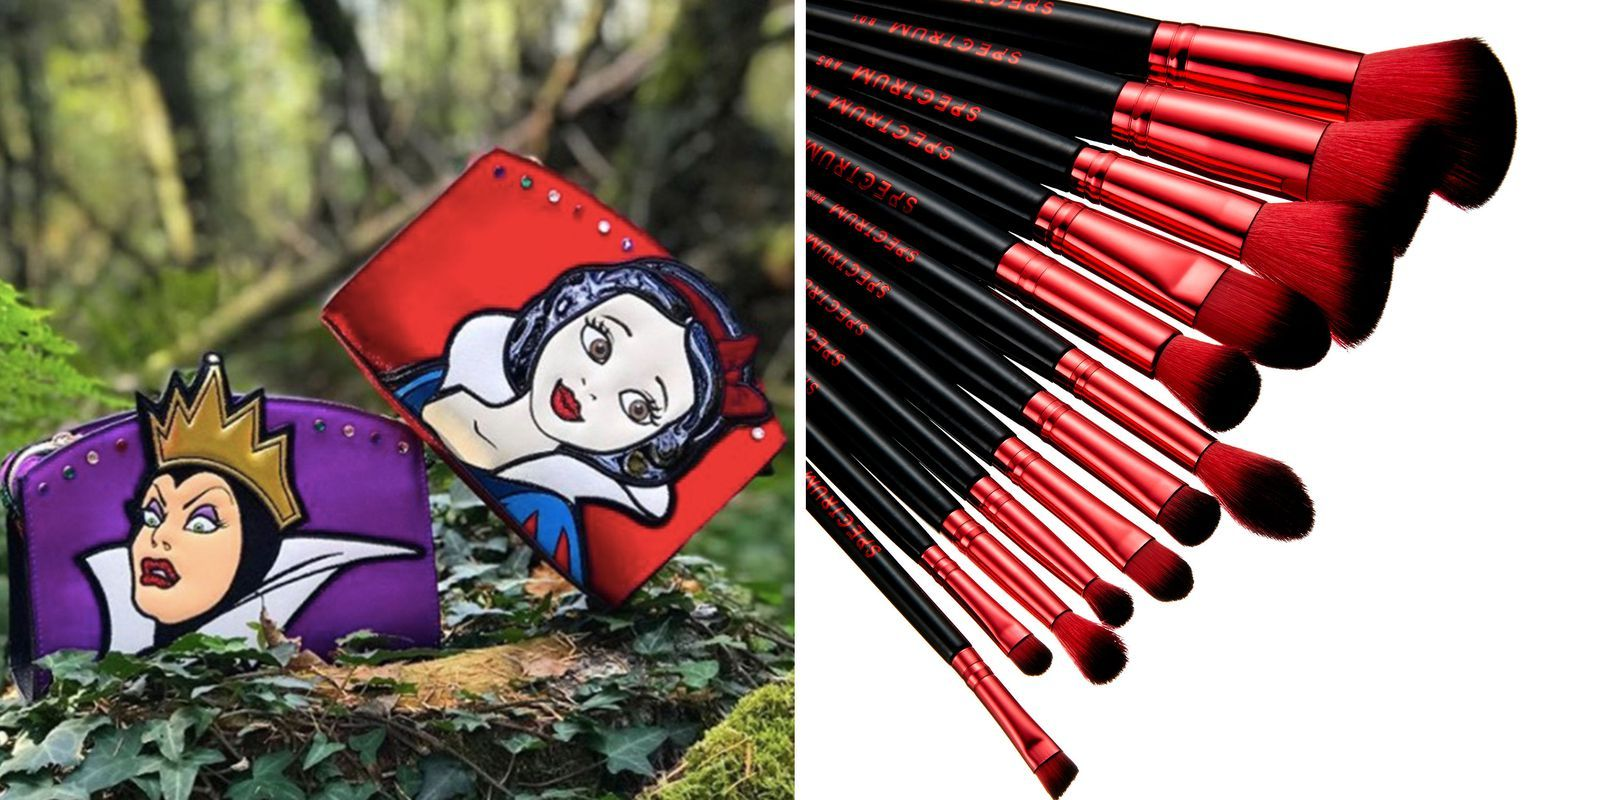 Spectrum Collections is launching a Disney x Snow White